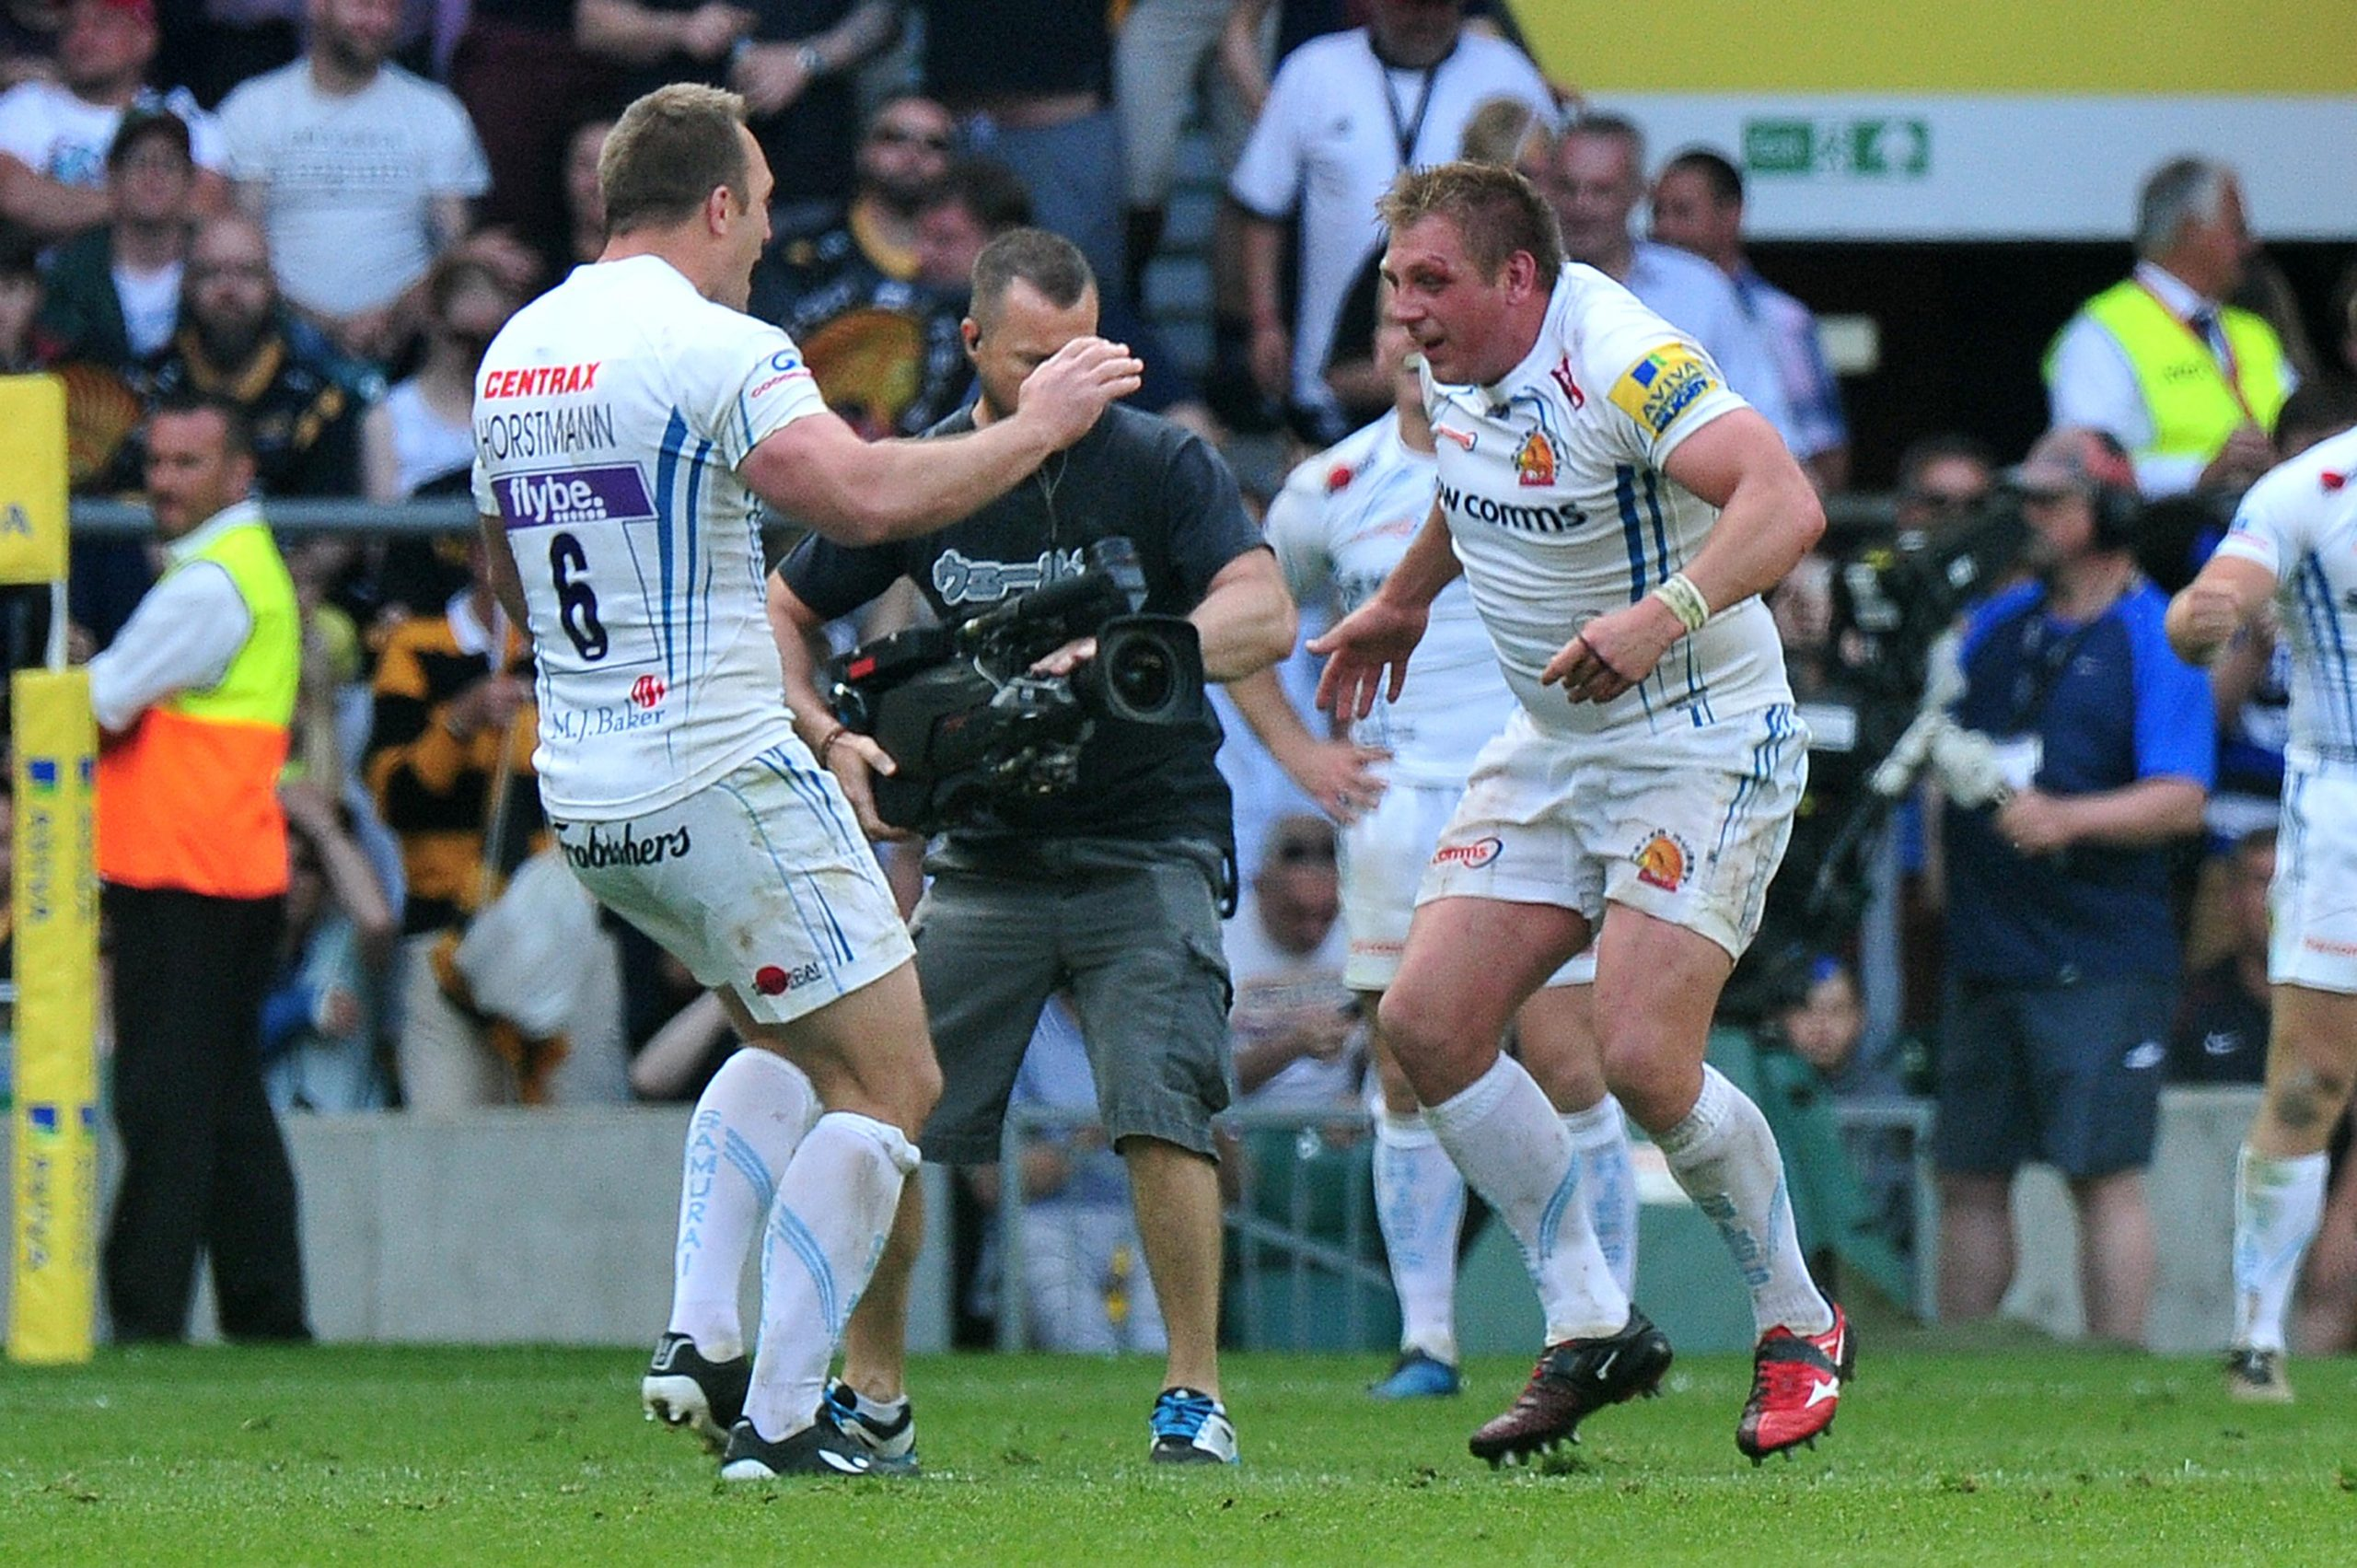 Carl Rimmer and Kai Horstmann Exeter Chiefs